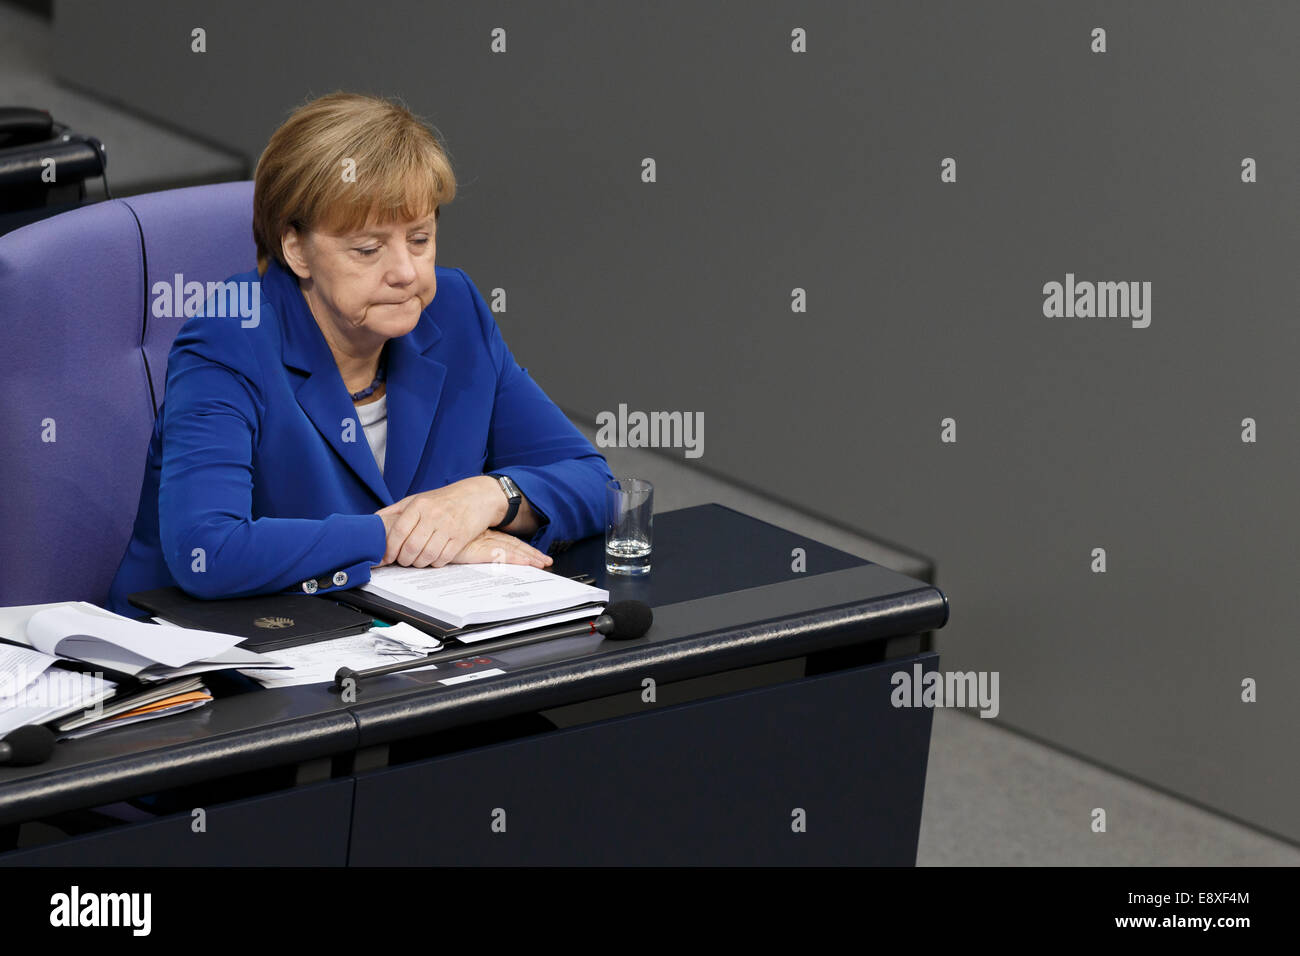 Berlin, Germany. 16th October, 2014. Delivery of a governmental declaration by the German Chancellor Angela Merkel - Stock Image